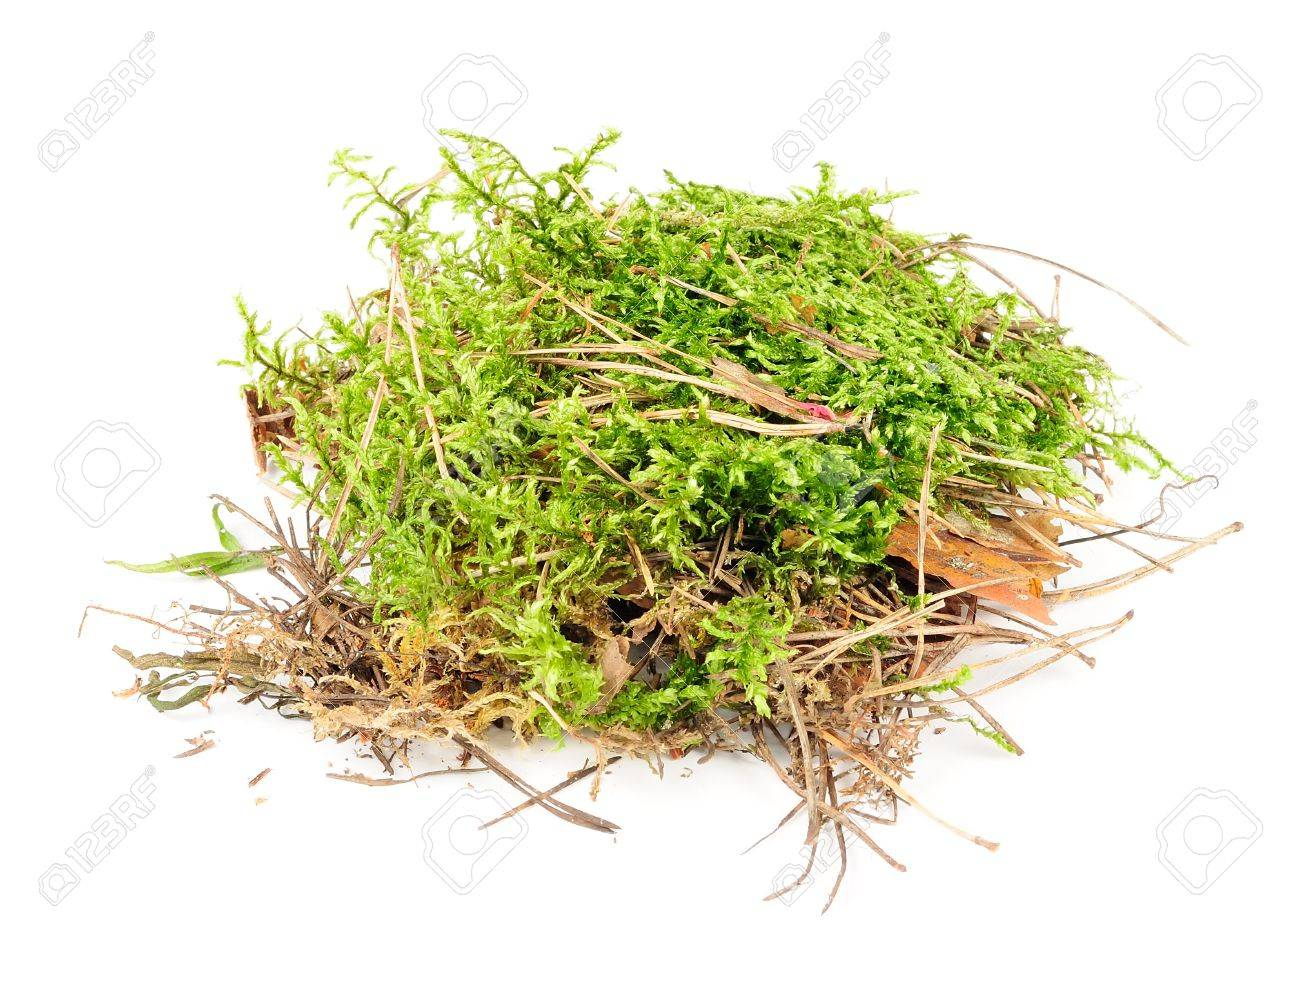 Clump of Green Moss Isolated on White Background Stock Photo - 15359303